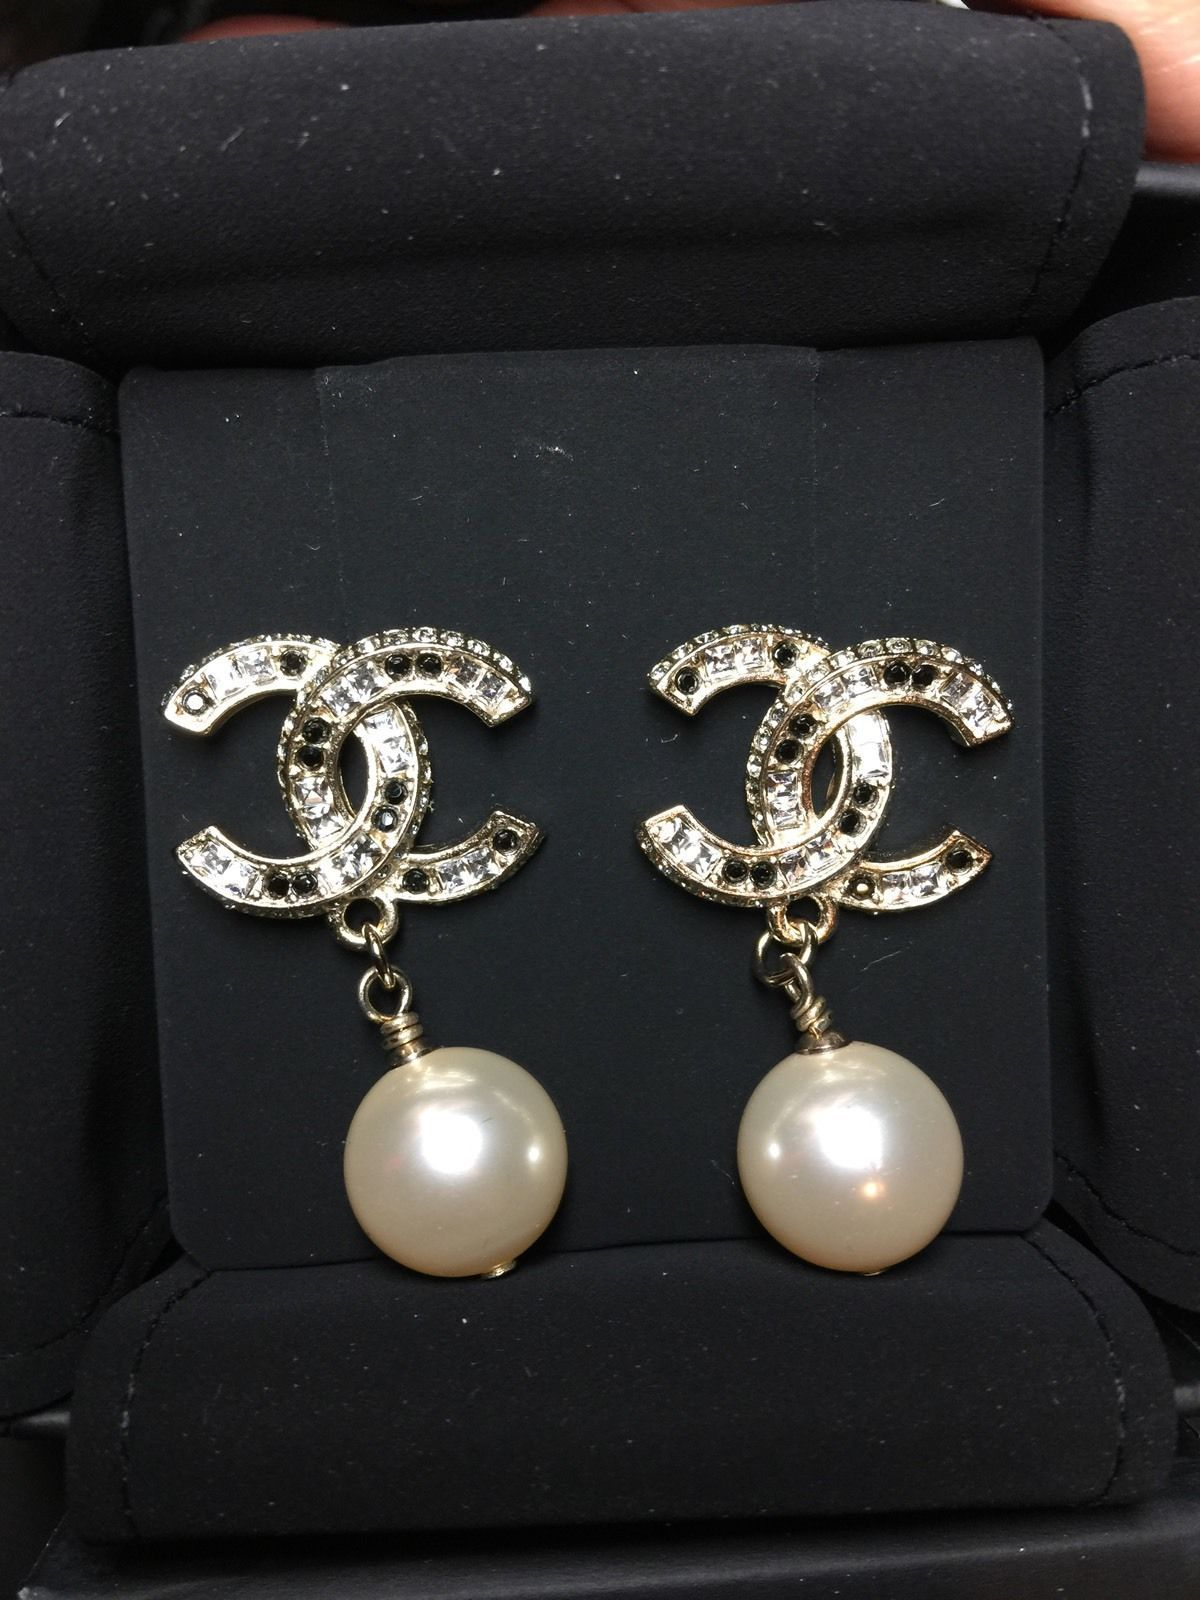 channel jewelry earrings 2015 chanel gold black large cc pearl drop 3626